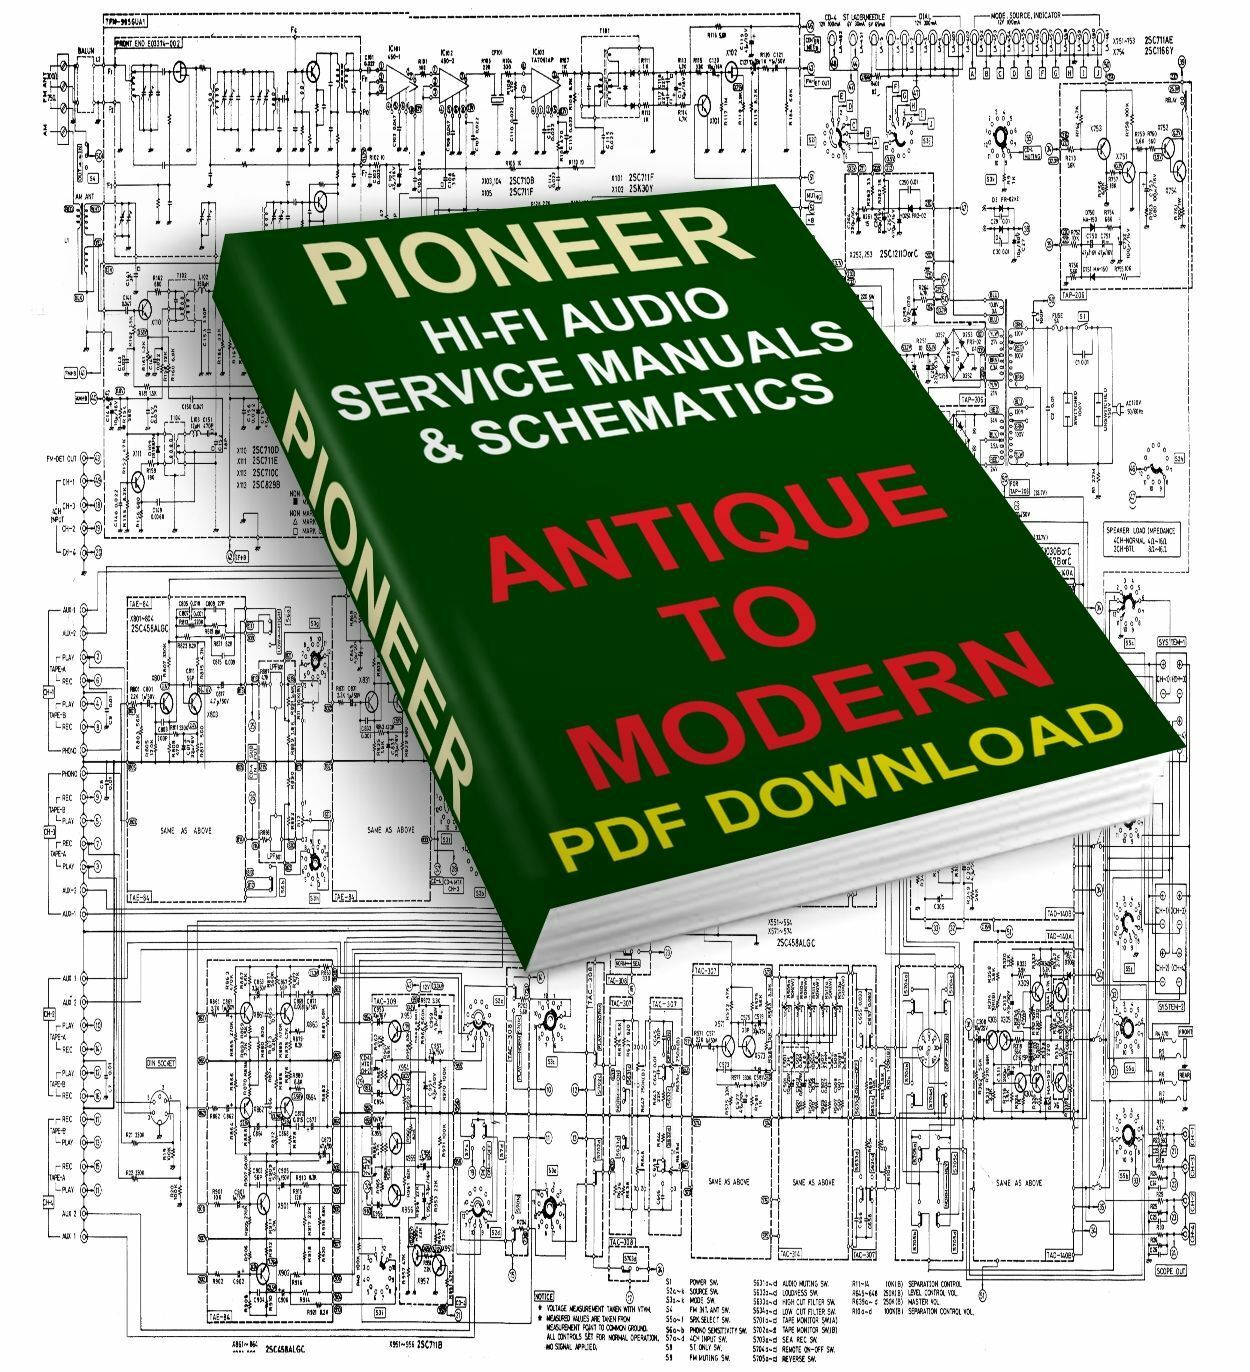 Pioneer Service Manuals Schematics Antique To Modern Download Deh Wiring Harness P520 1 Of 1free Shipping